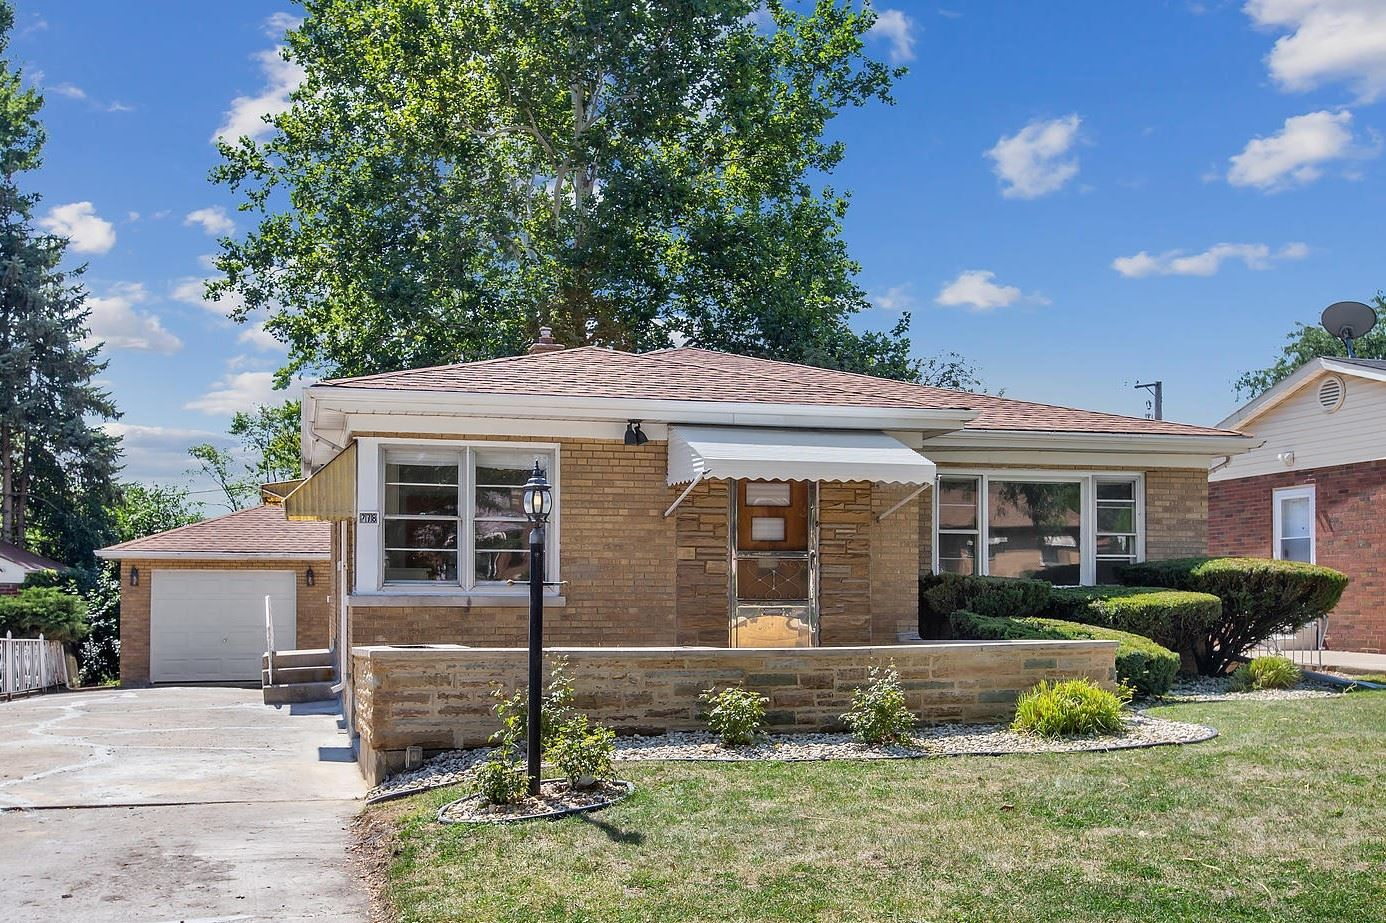 278 W 10th Street, Chicago Heights, IL 60411 - #: 11208919